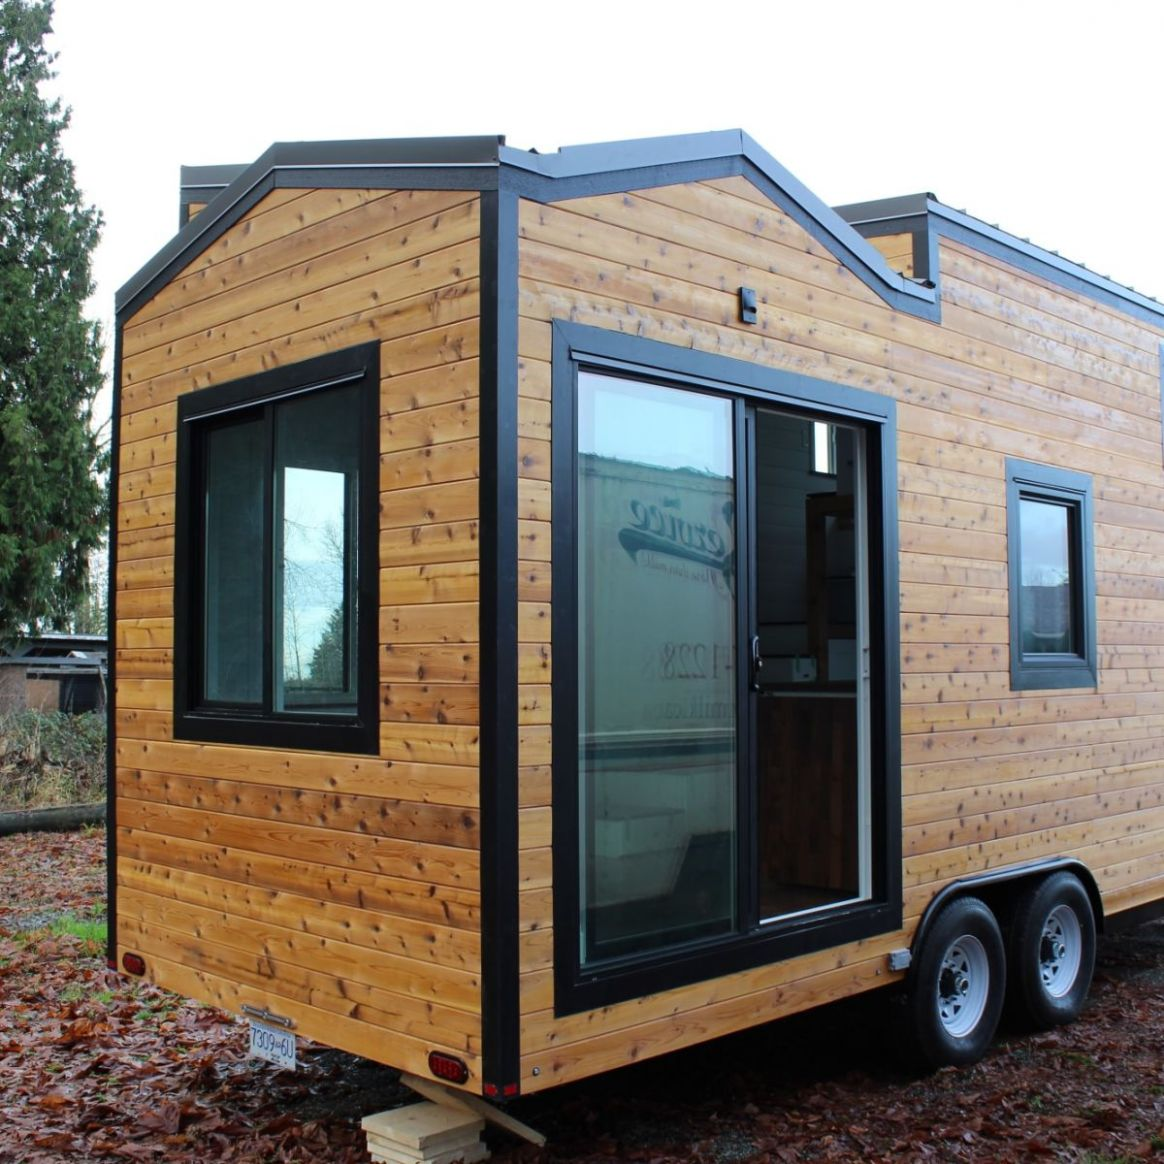 New 11' Tiny house for Sale in Vancouver BC - Tiny House for Sale in  Surrey, British Columbia - Tiny House Listings